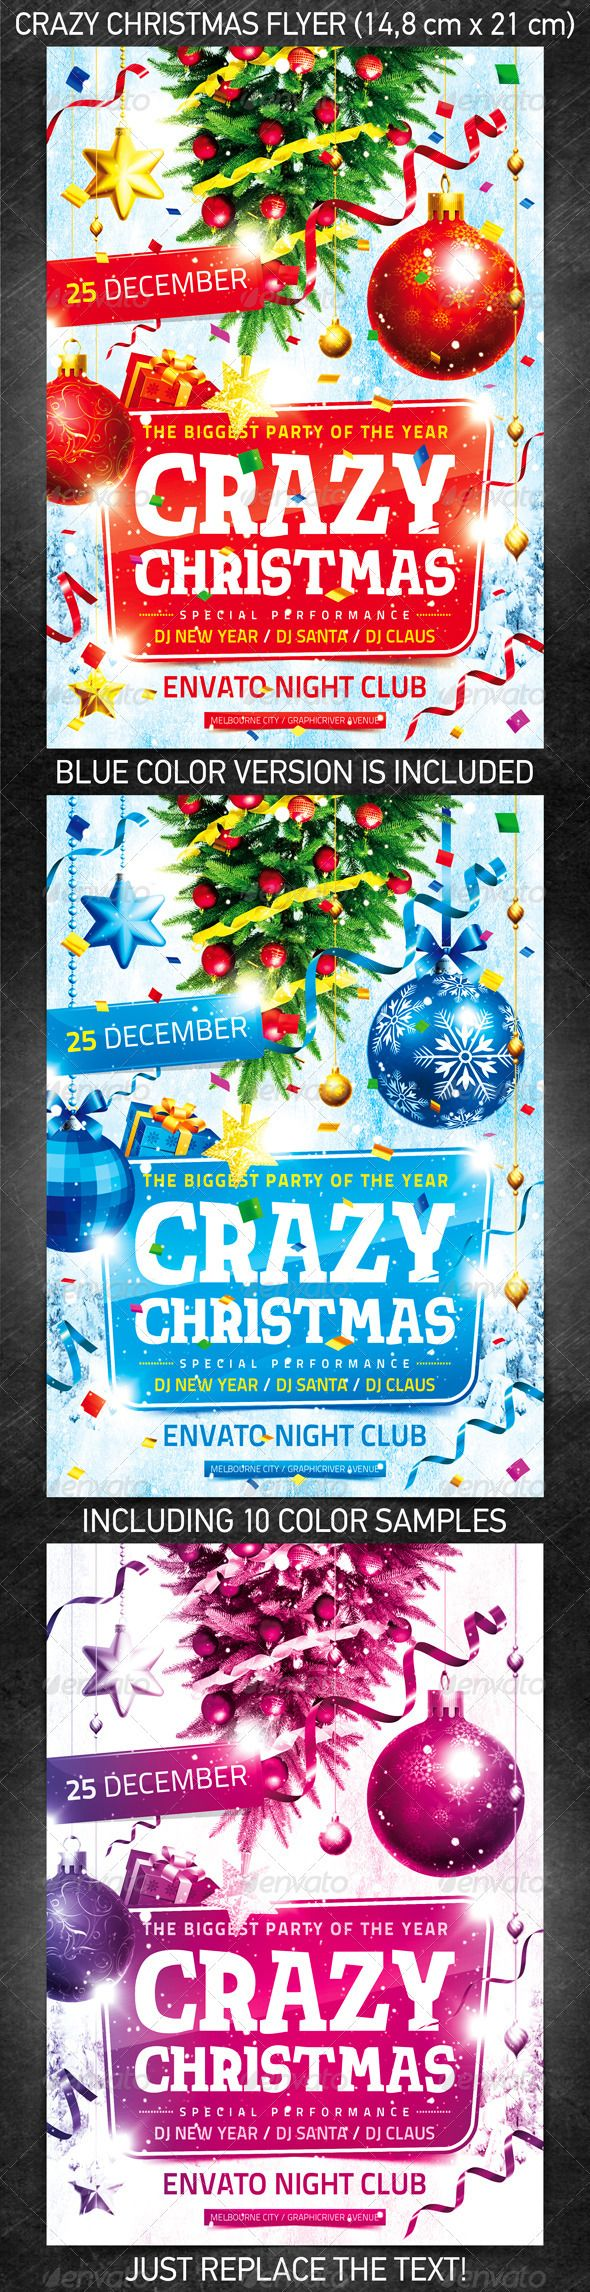 best images about poster ideas christmas parties crazy christmas flyer